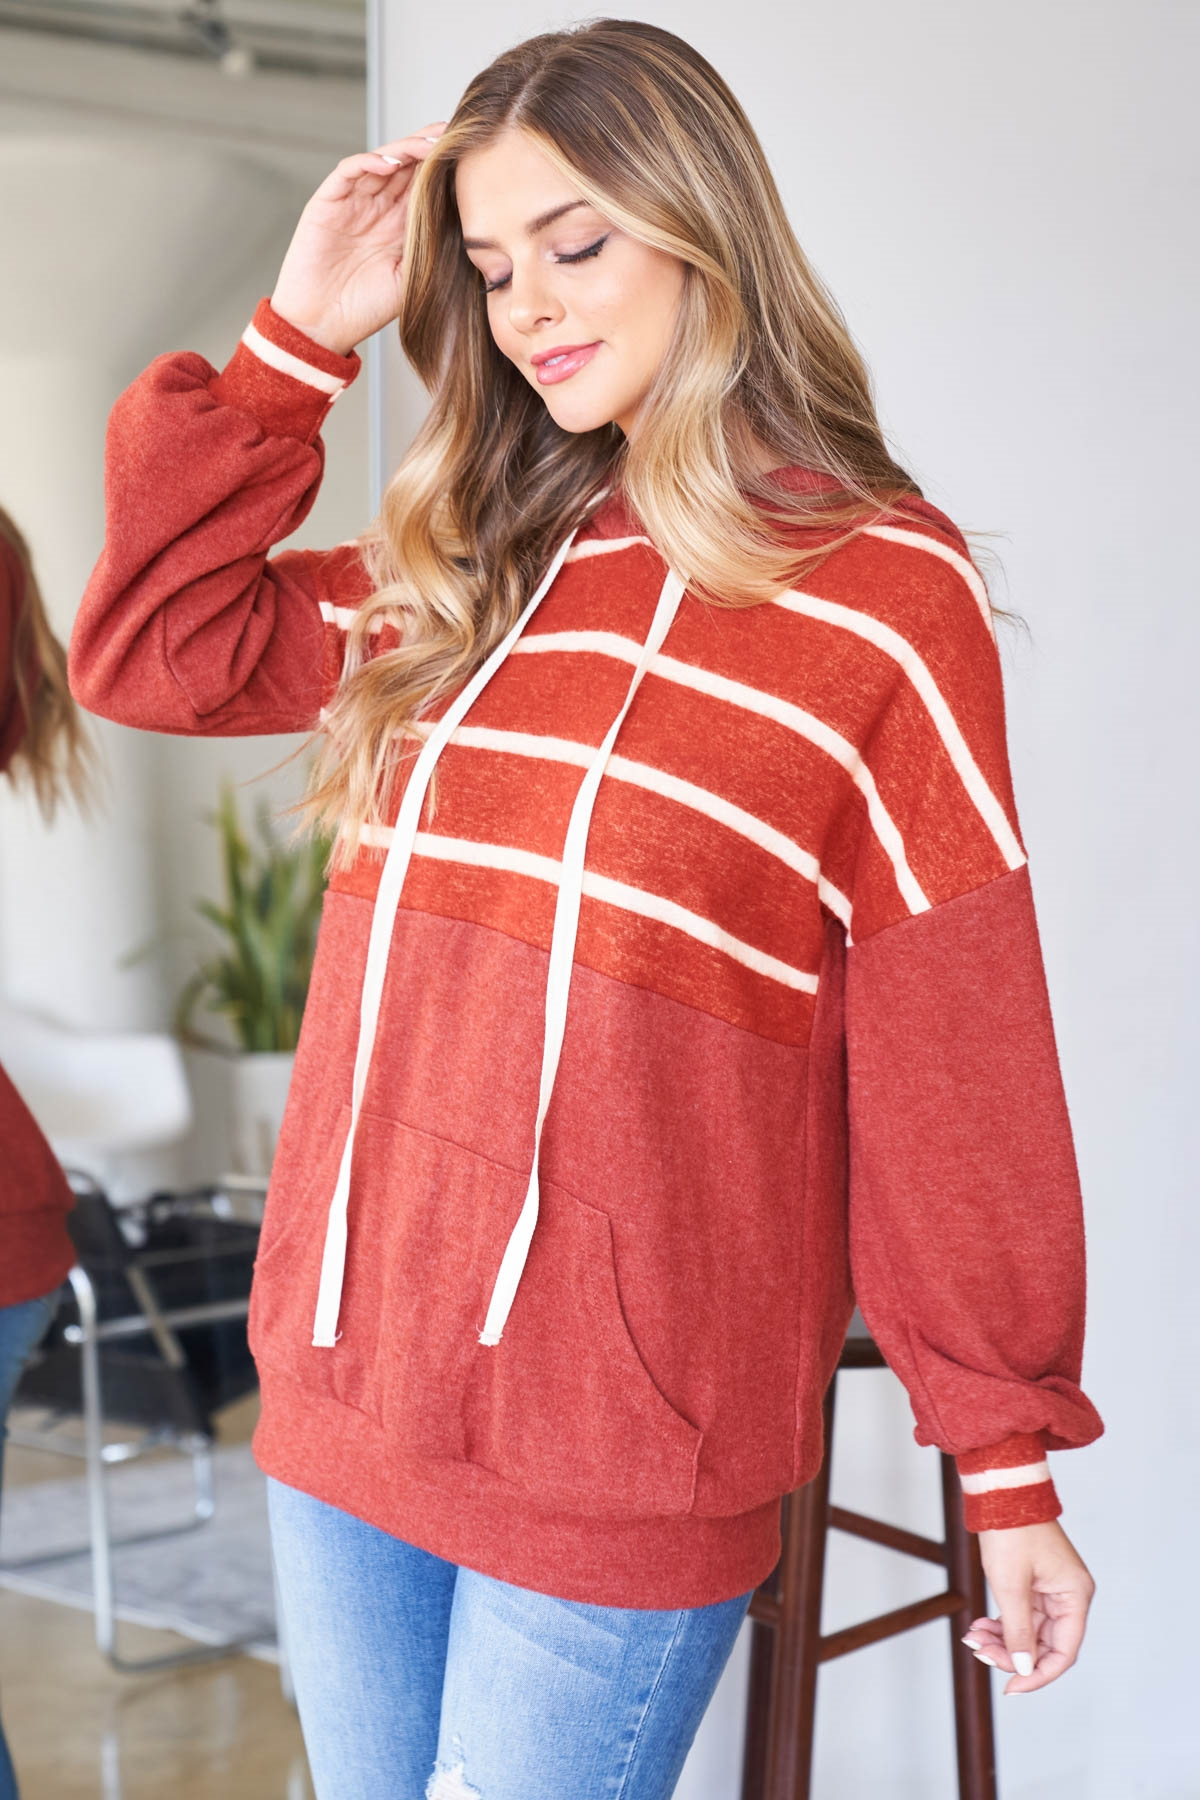 S12-3-3-PPT2048-RSTRSTWT - STRIPE CONTRAST HOODIE WITH KANGAROO POCKET- RUST/RUST-WHITE 1-2-2-2